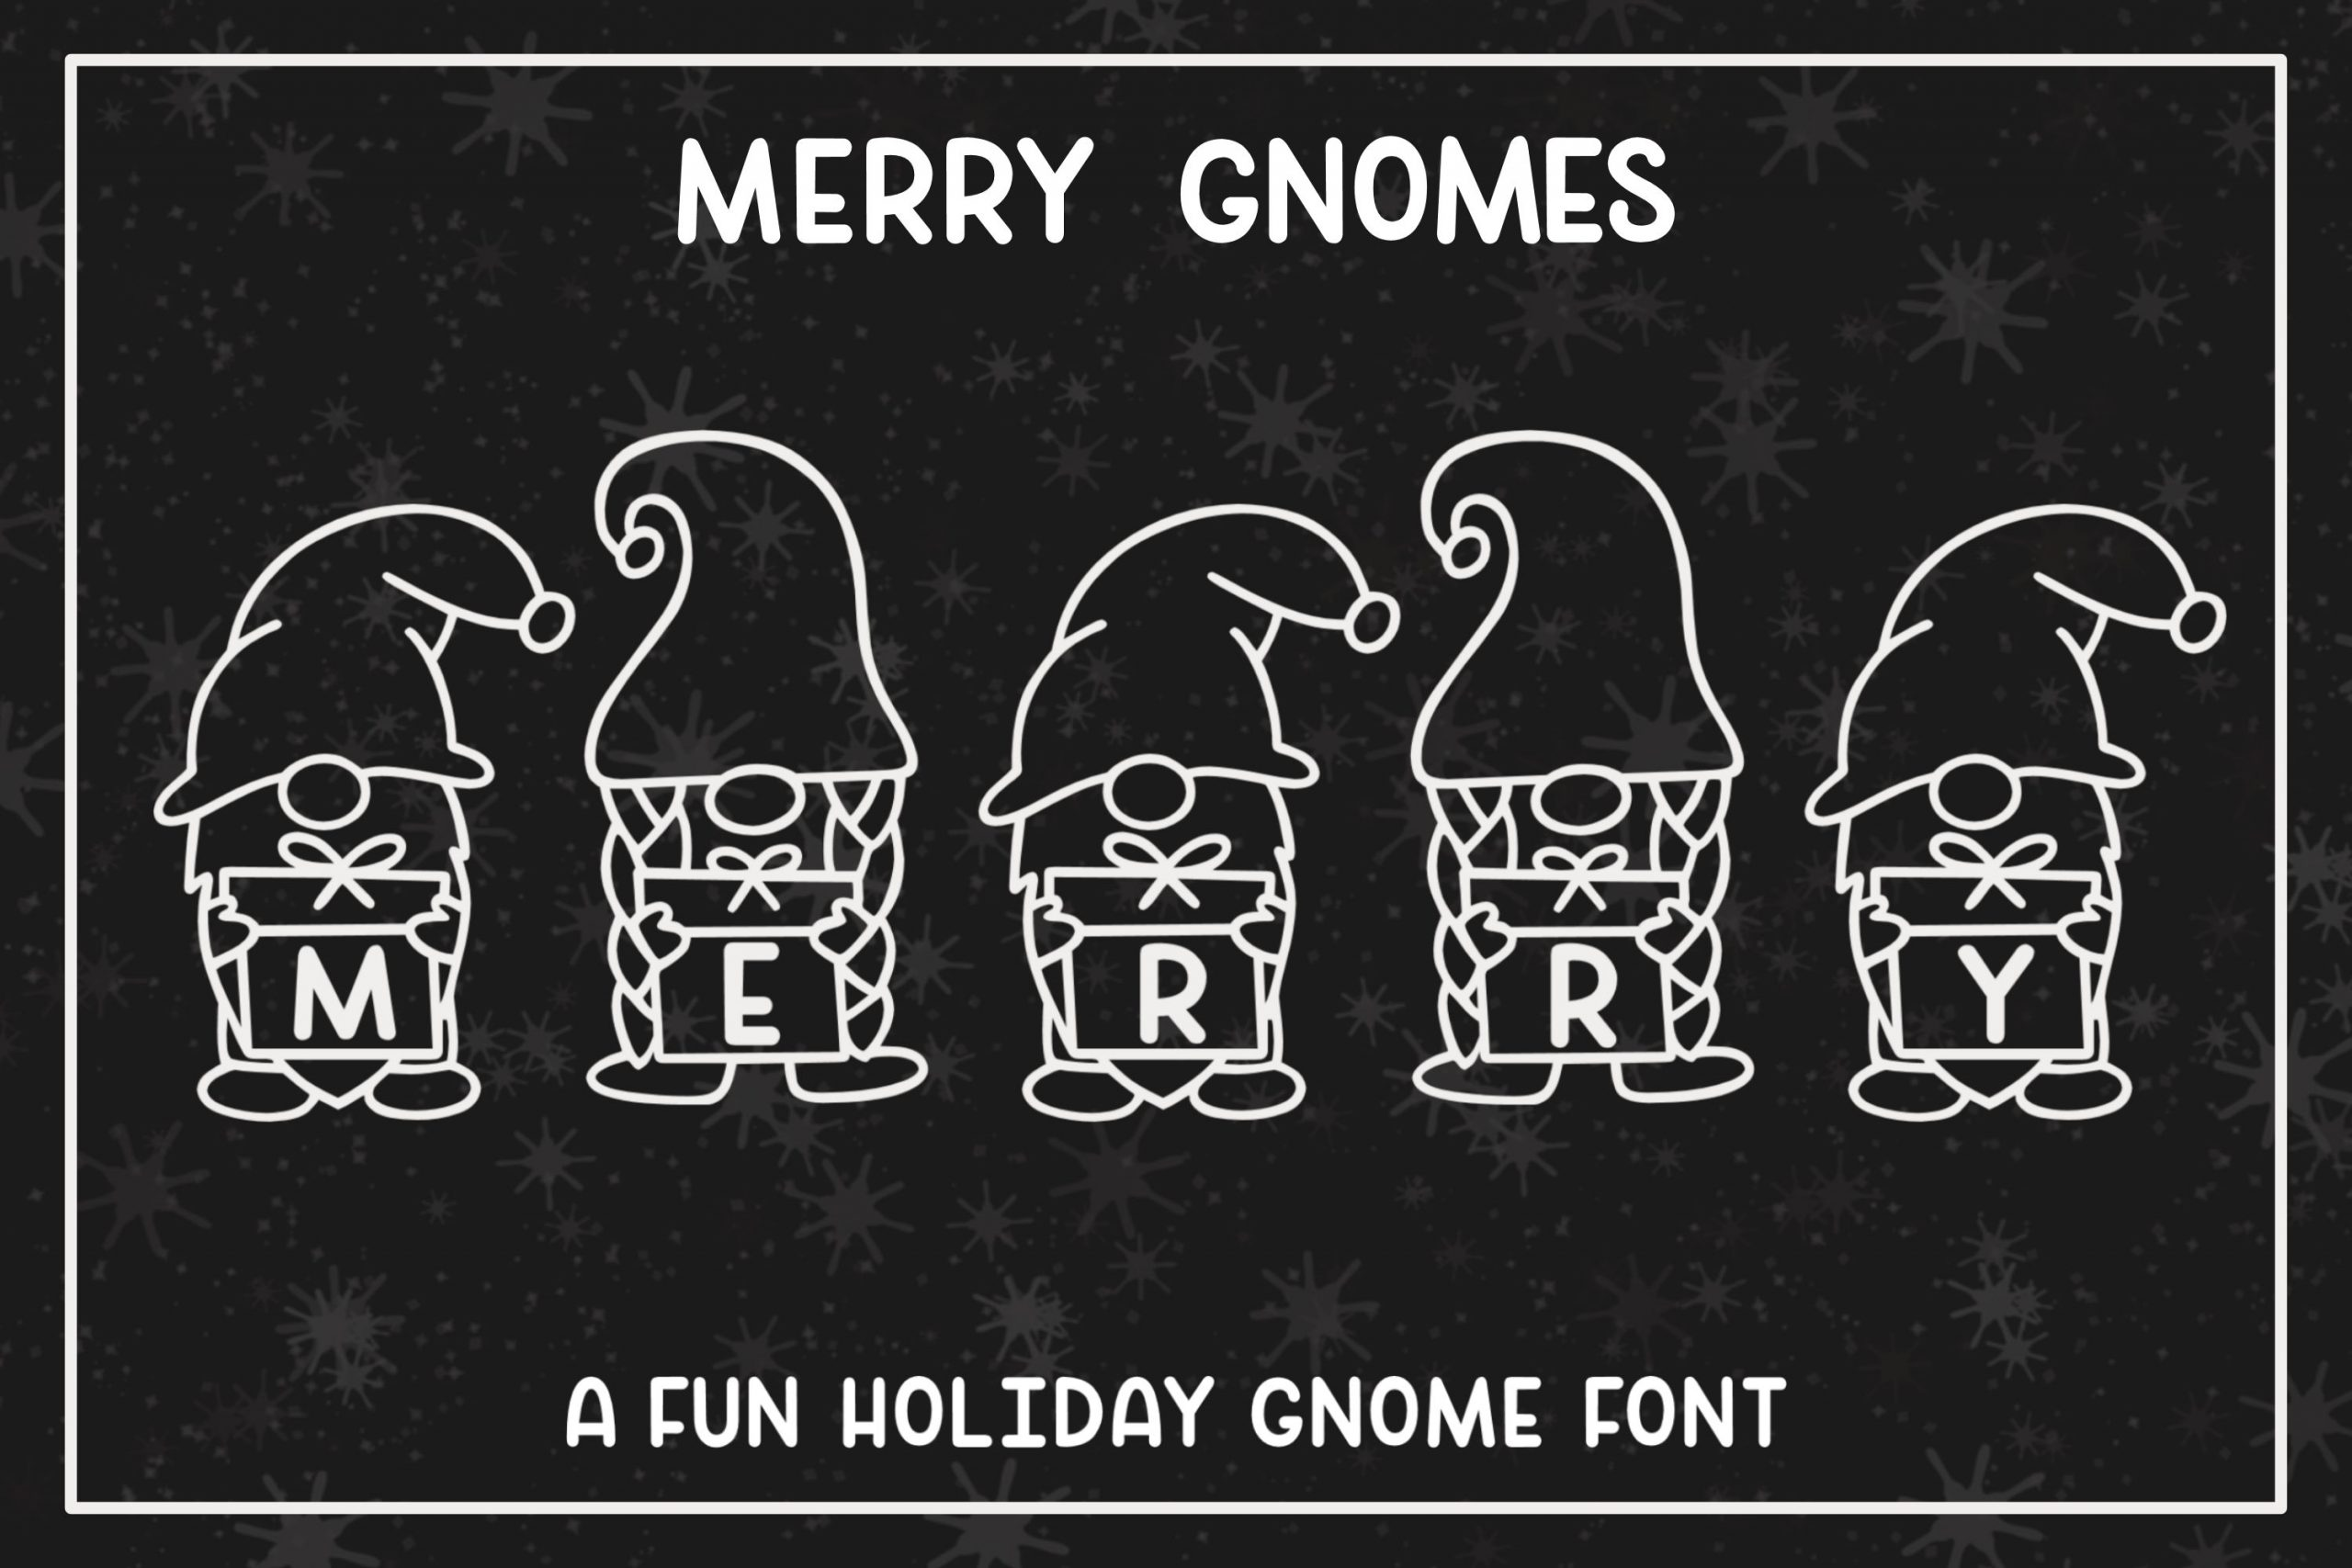 merry gnomes font